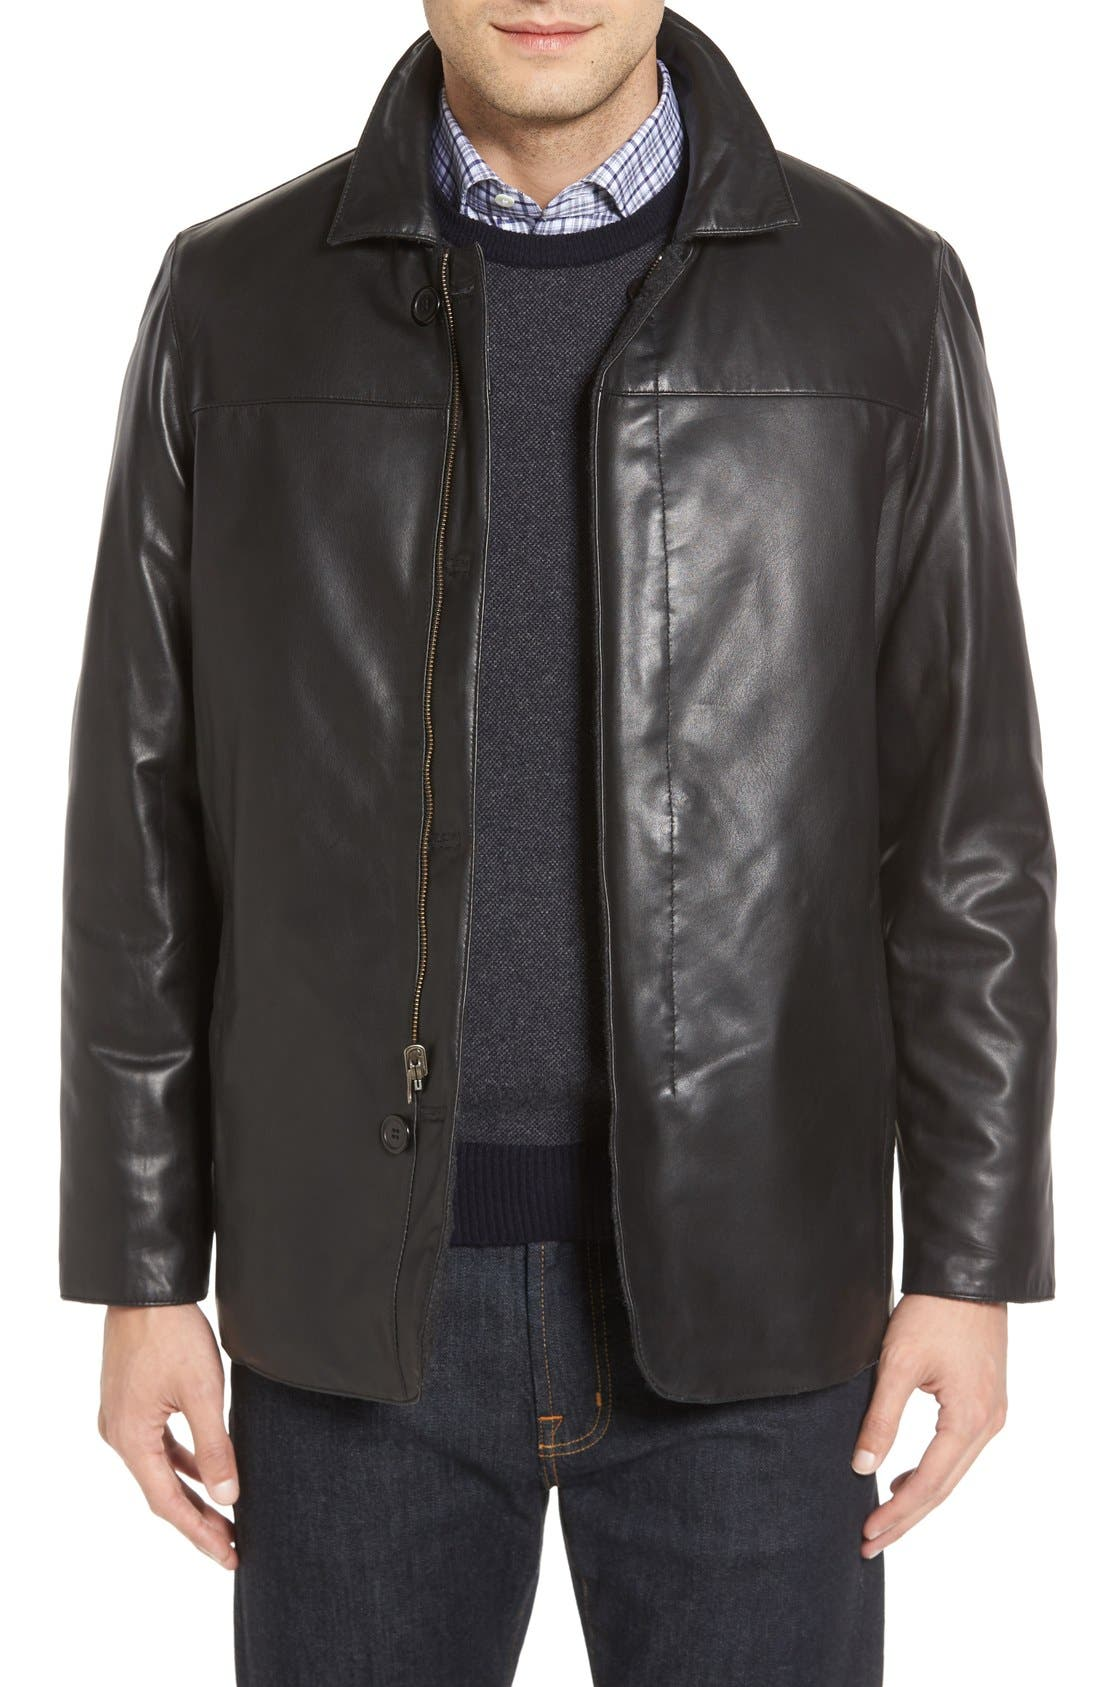 Alternate Image 1 Selected - Missani Le Collezioni Reversible Lambskin Leather & Quilted Wool Jacket